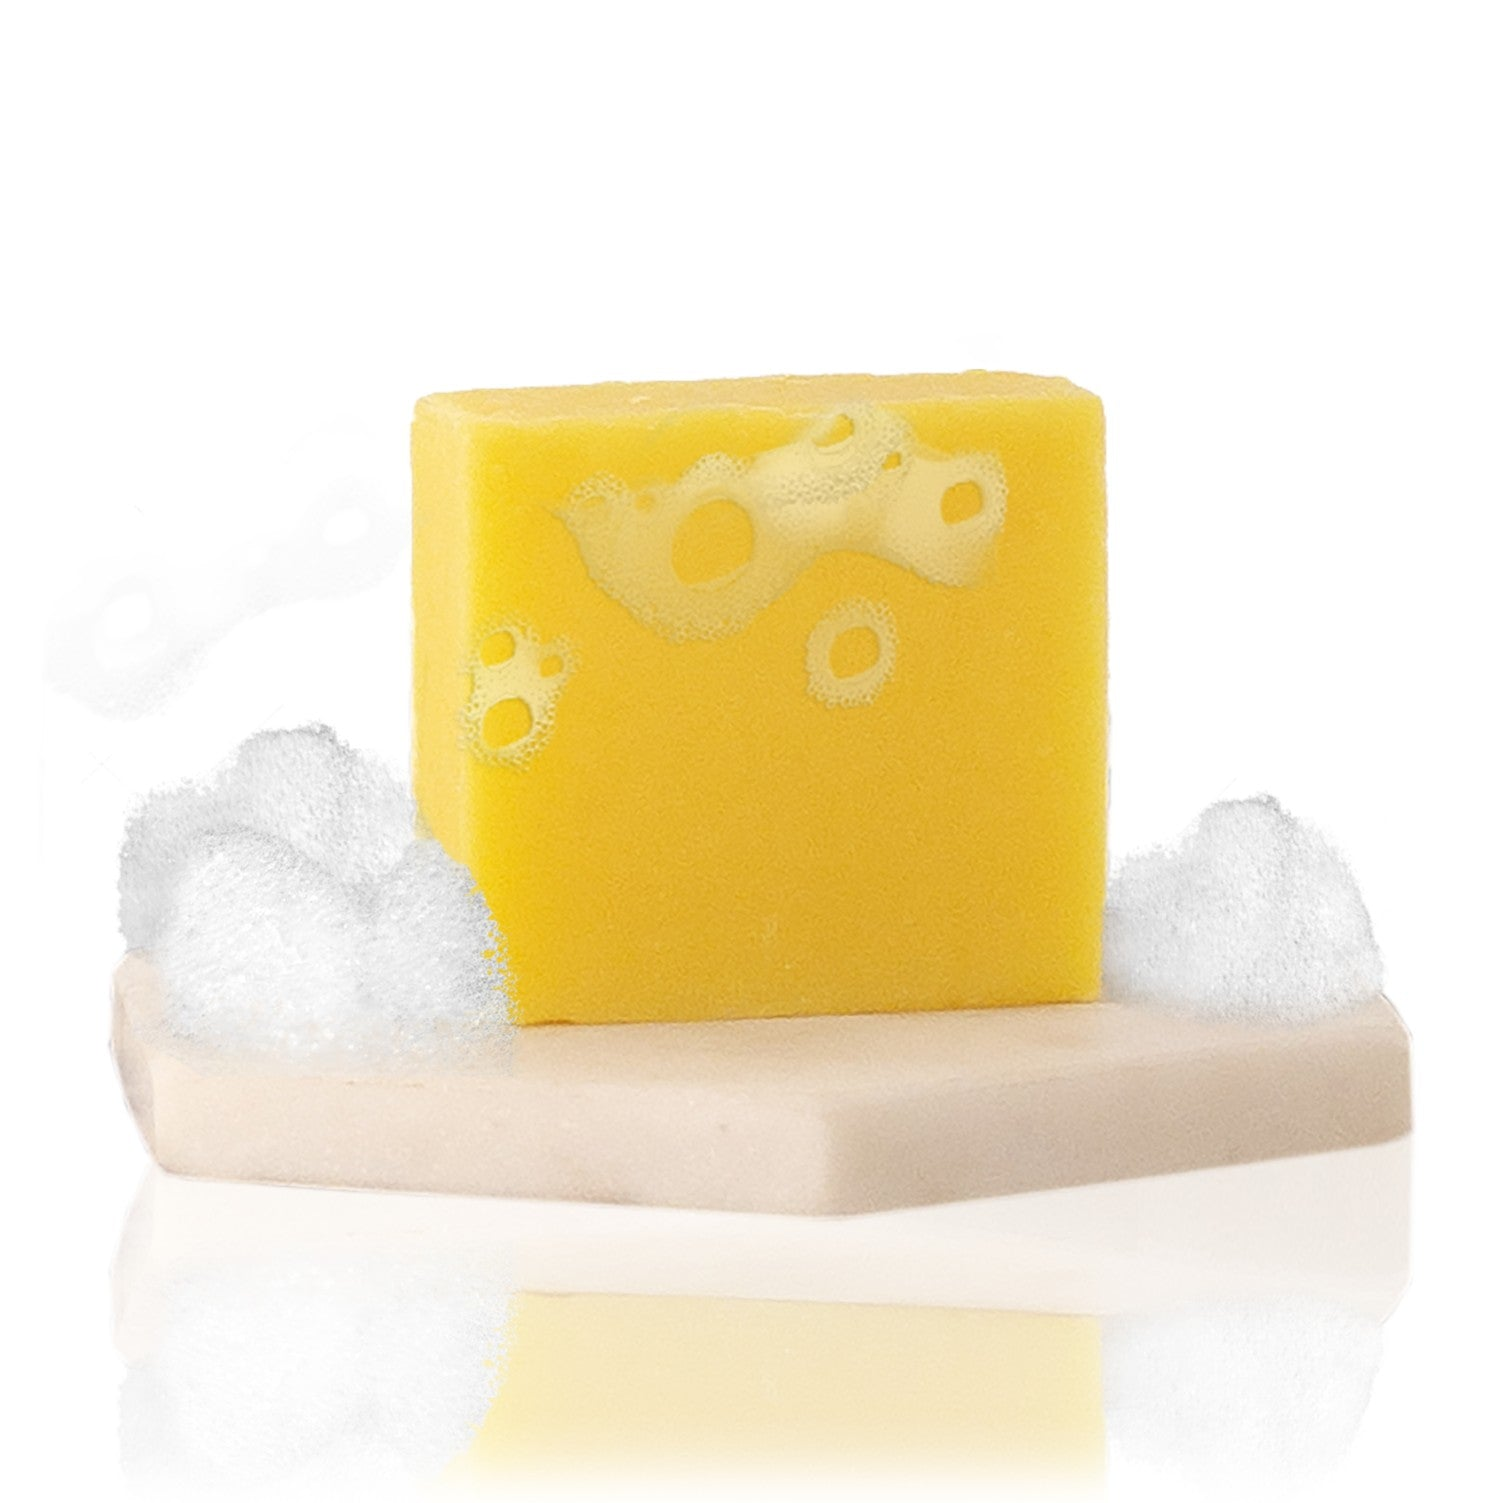 RW Refresh Nutrients Soap (Suitable for Eczema-Prone Skin)